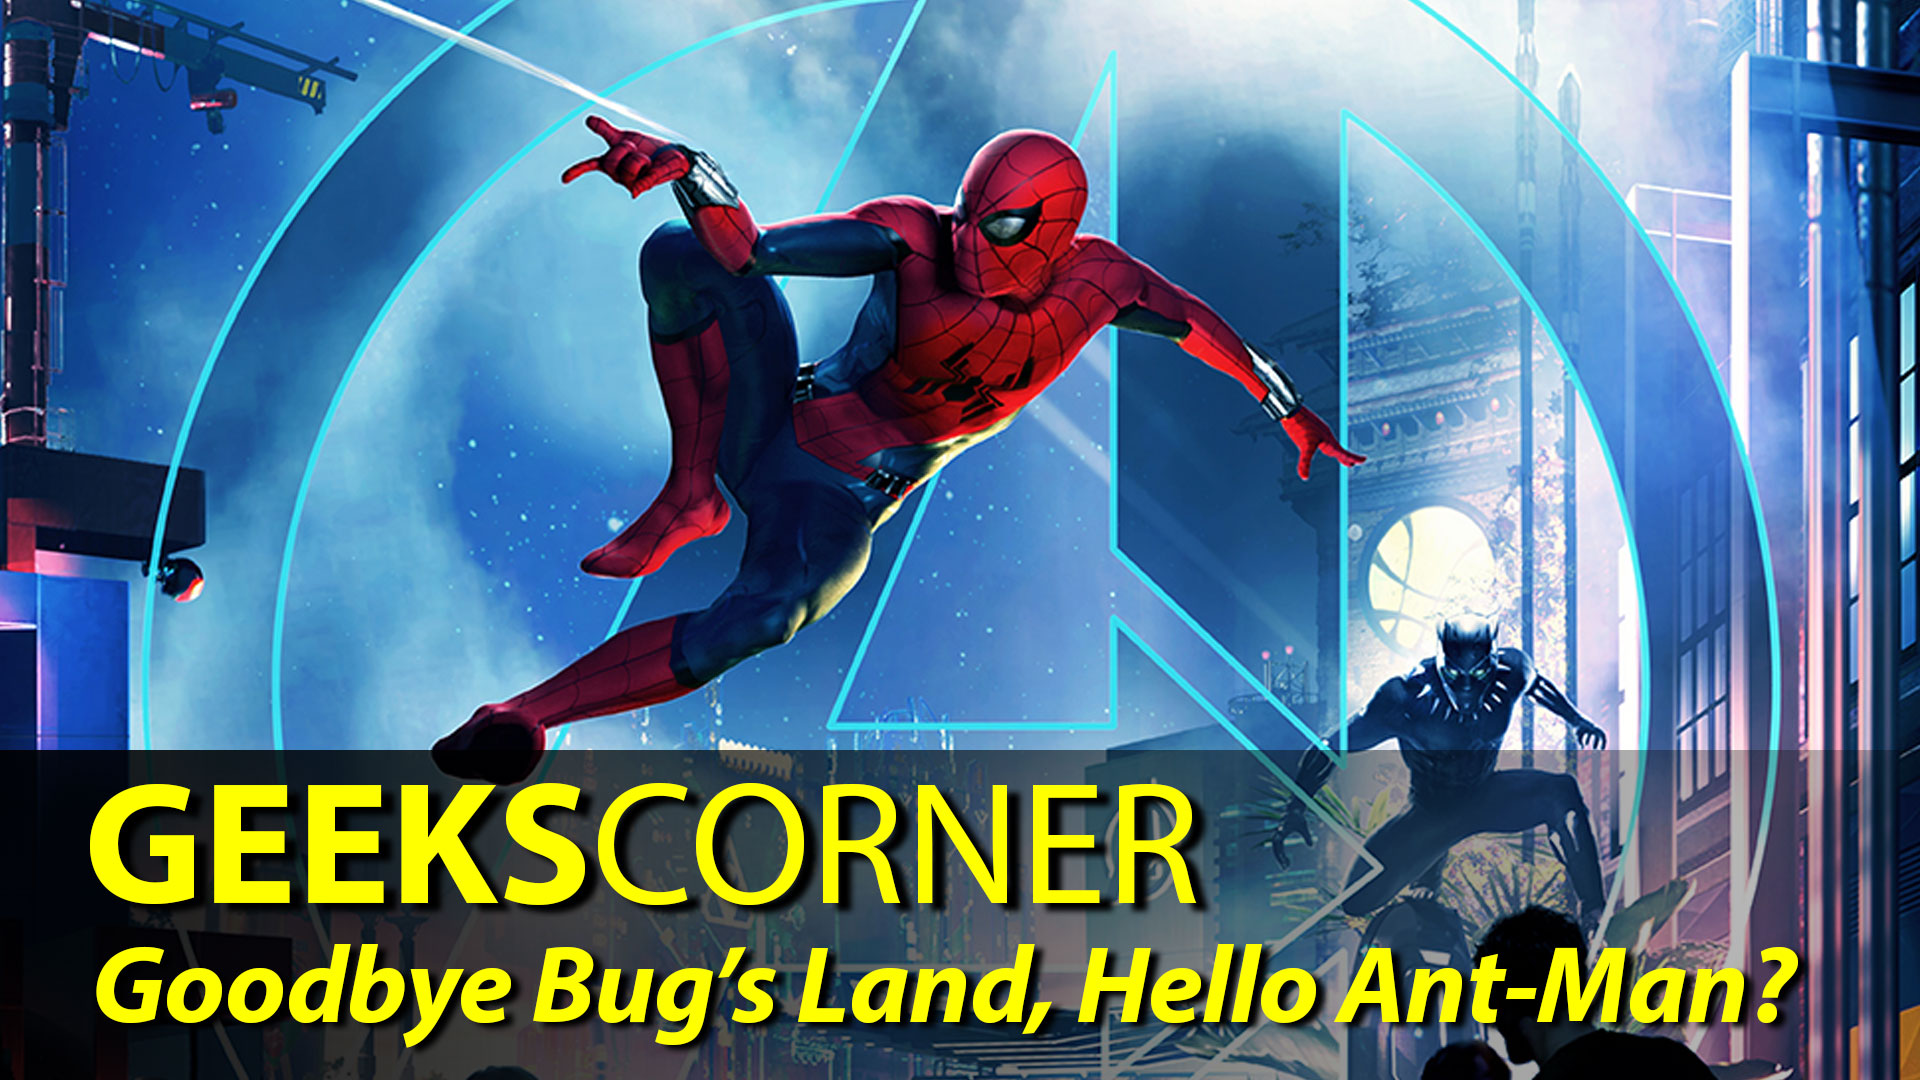 Goodbye Bug's Land, Hello Ant-Man? - GEEKS CORNER - Episode 825